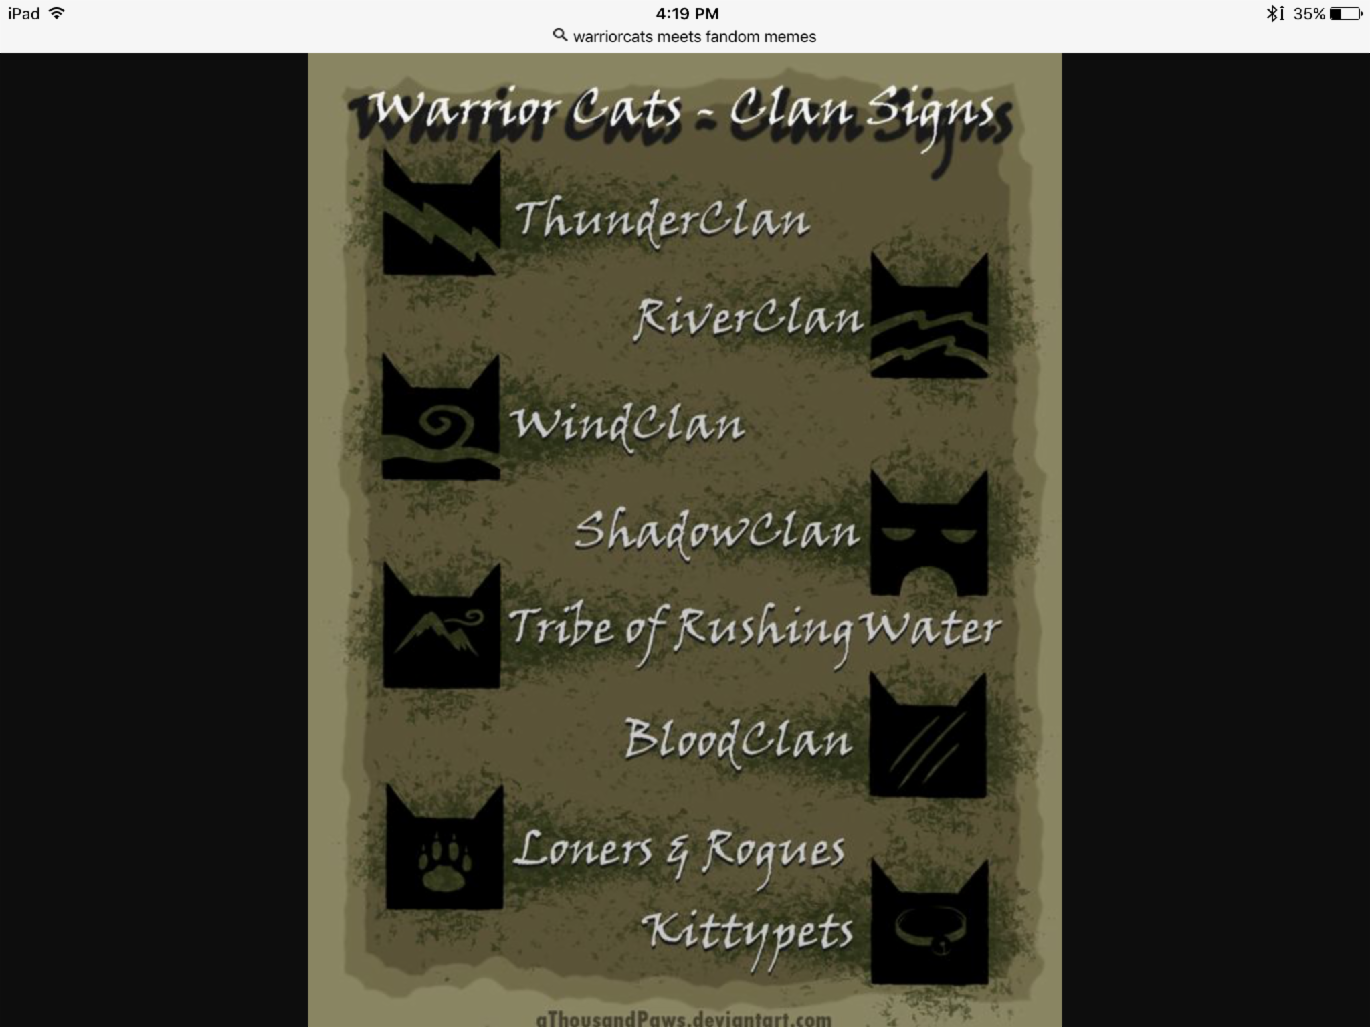 What warriorcats clan are you in?